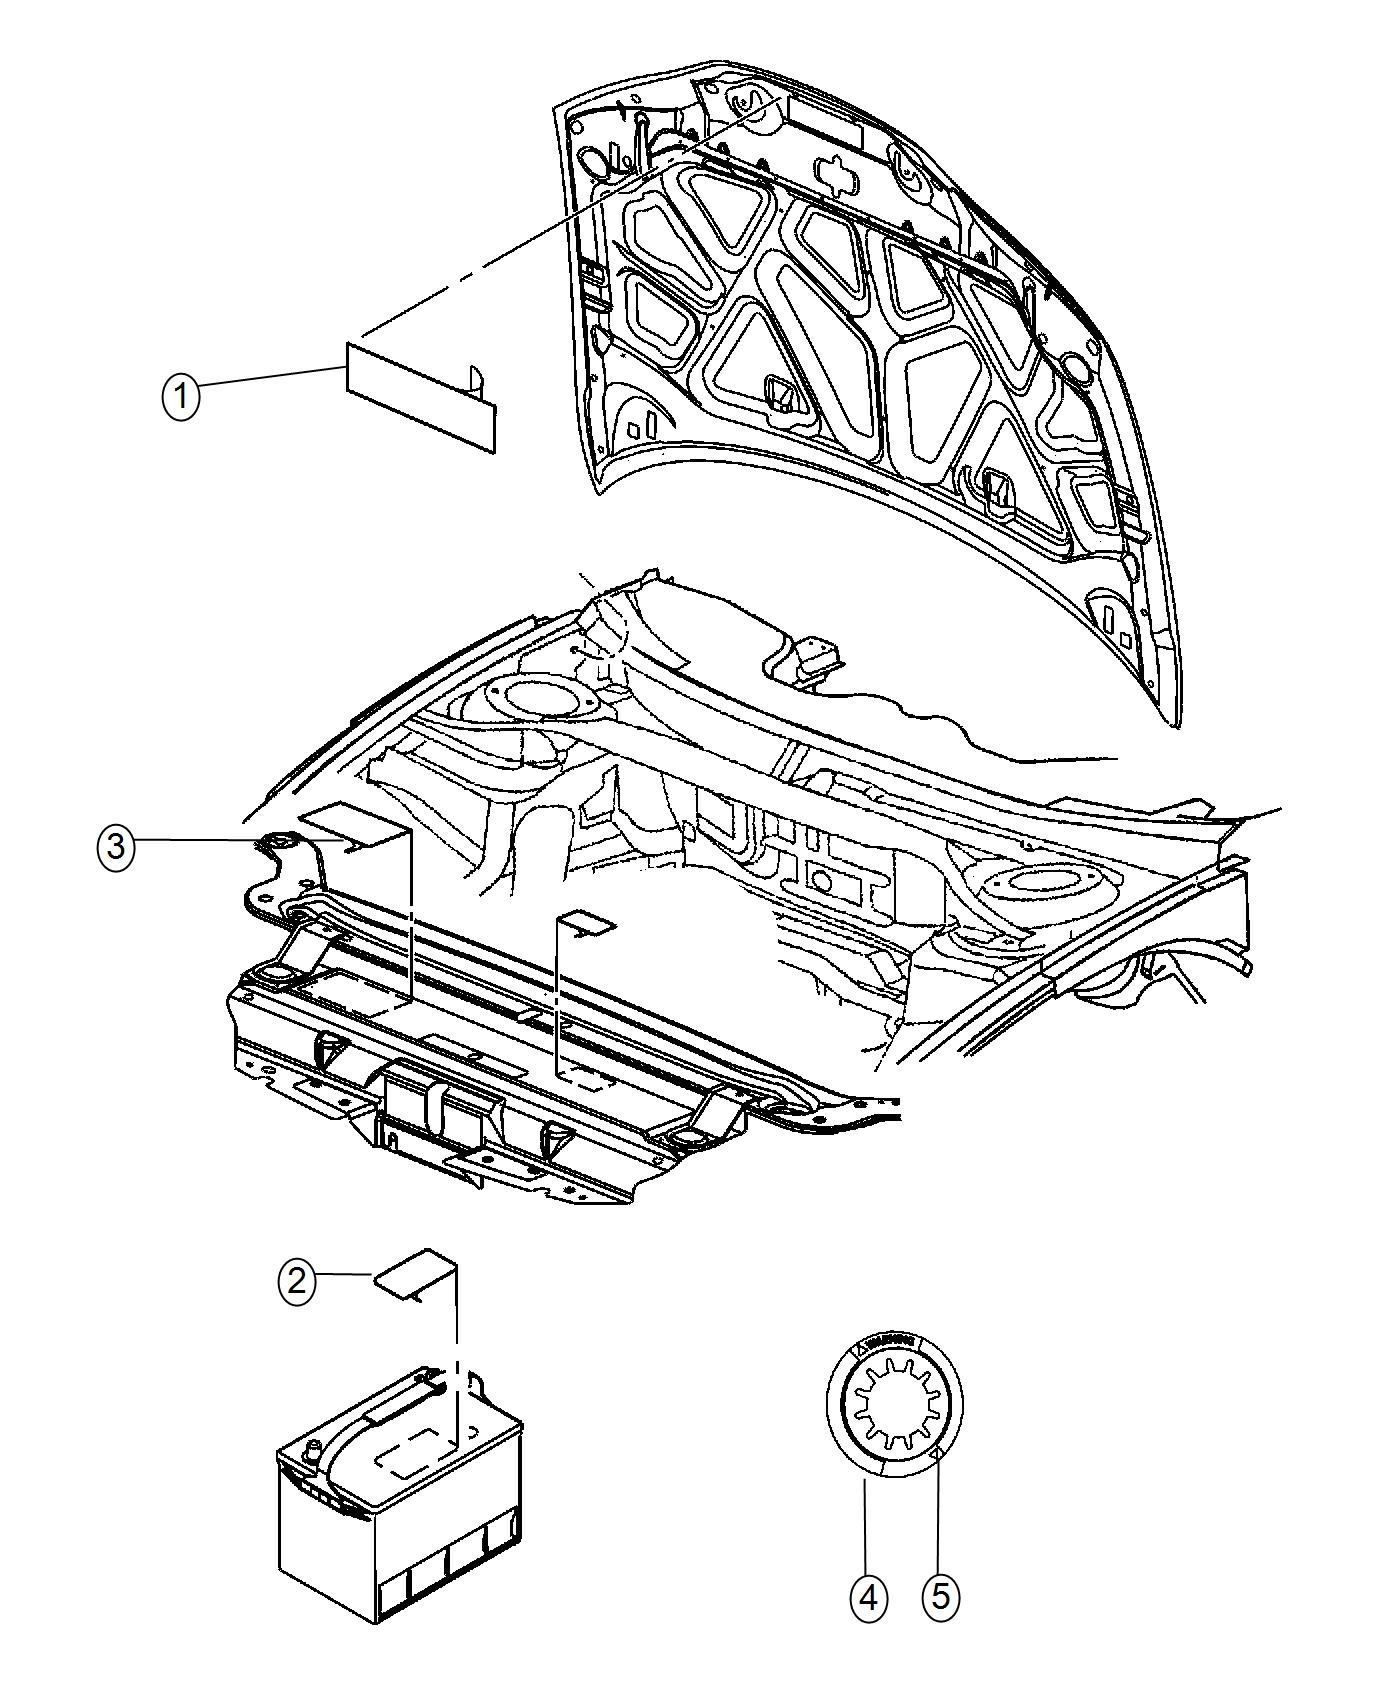 Dodge Challenger Label Air Conditioning System Xfc